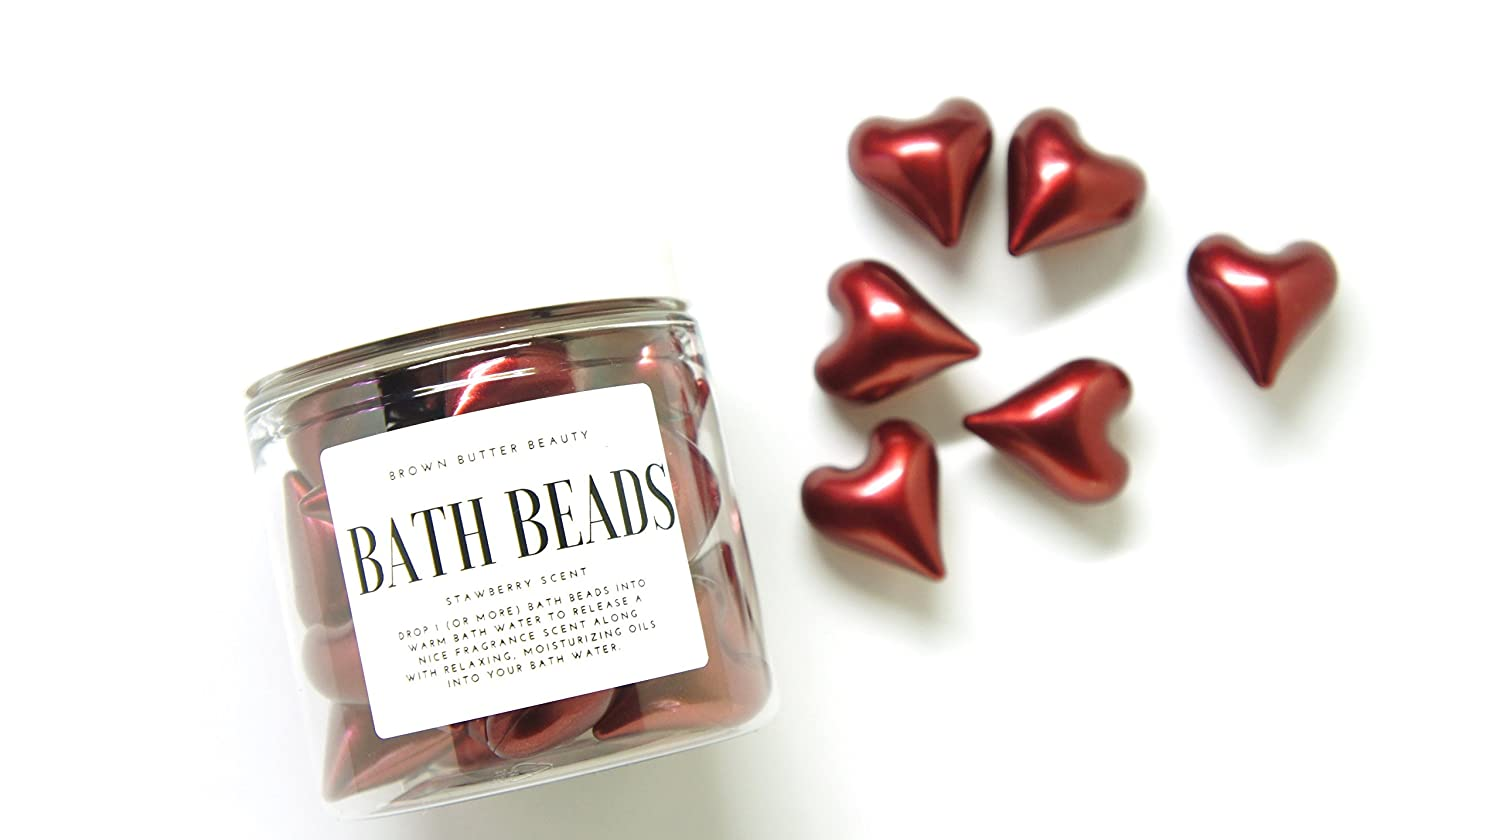 Bath Oil Beads | Bath Beads Pearls | Bath Beads for Woman | Bath Beads Moisturizing | Red Heart Shaped | Strawberry Scent Brown Butter Beauty